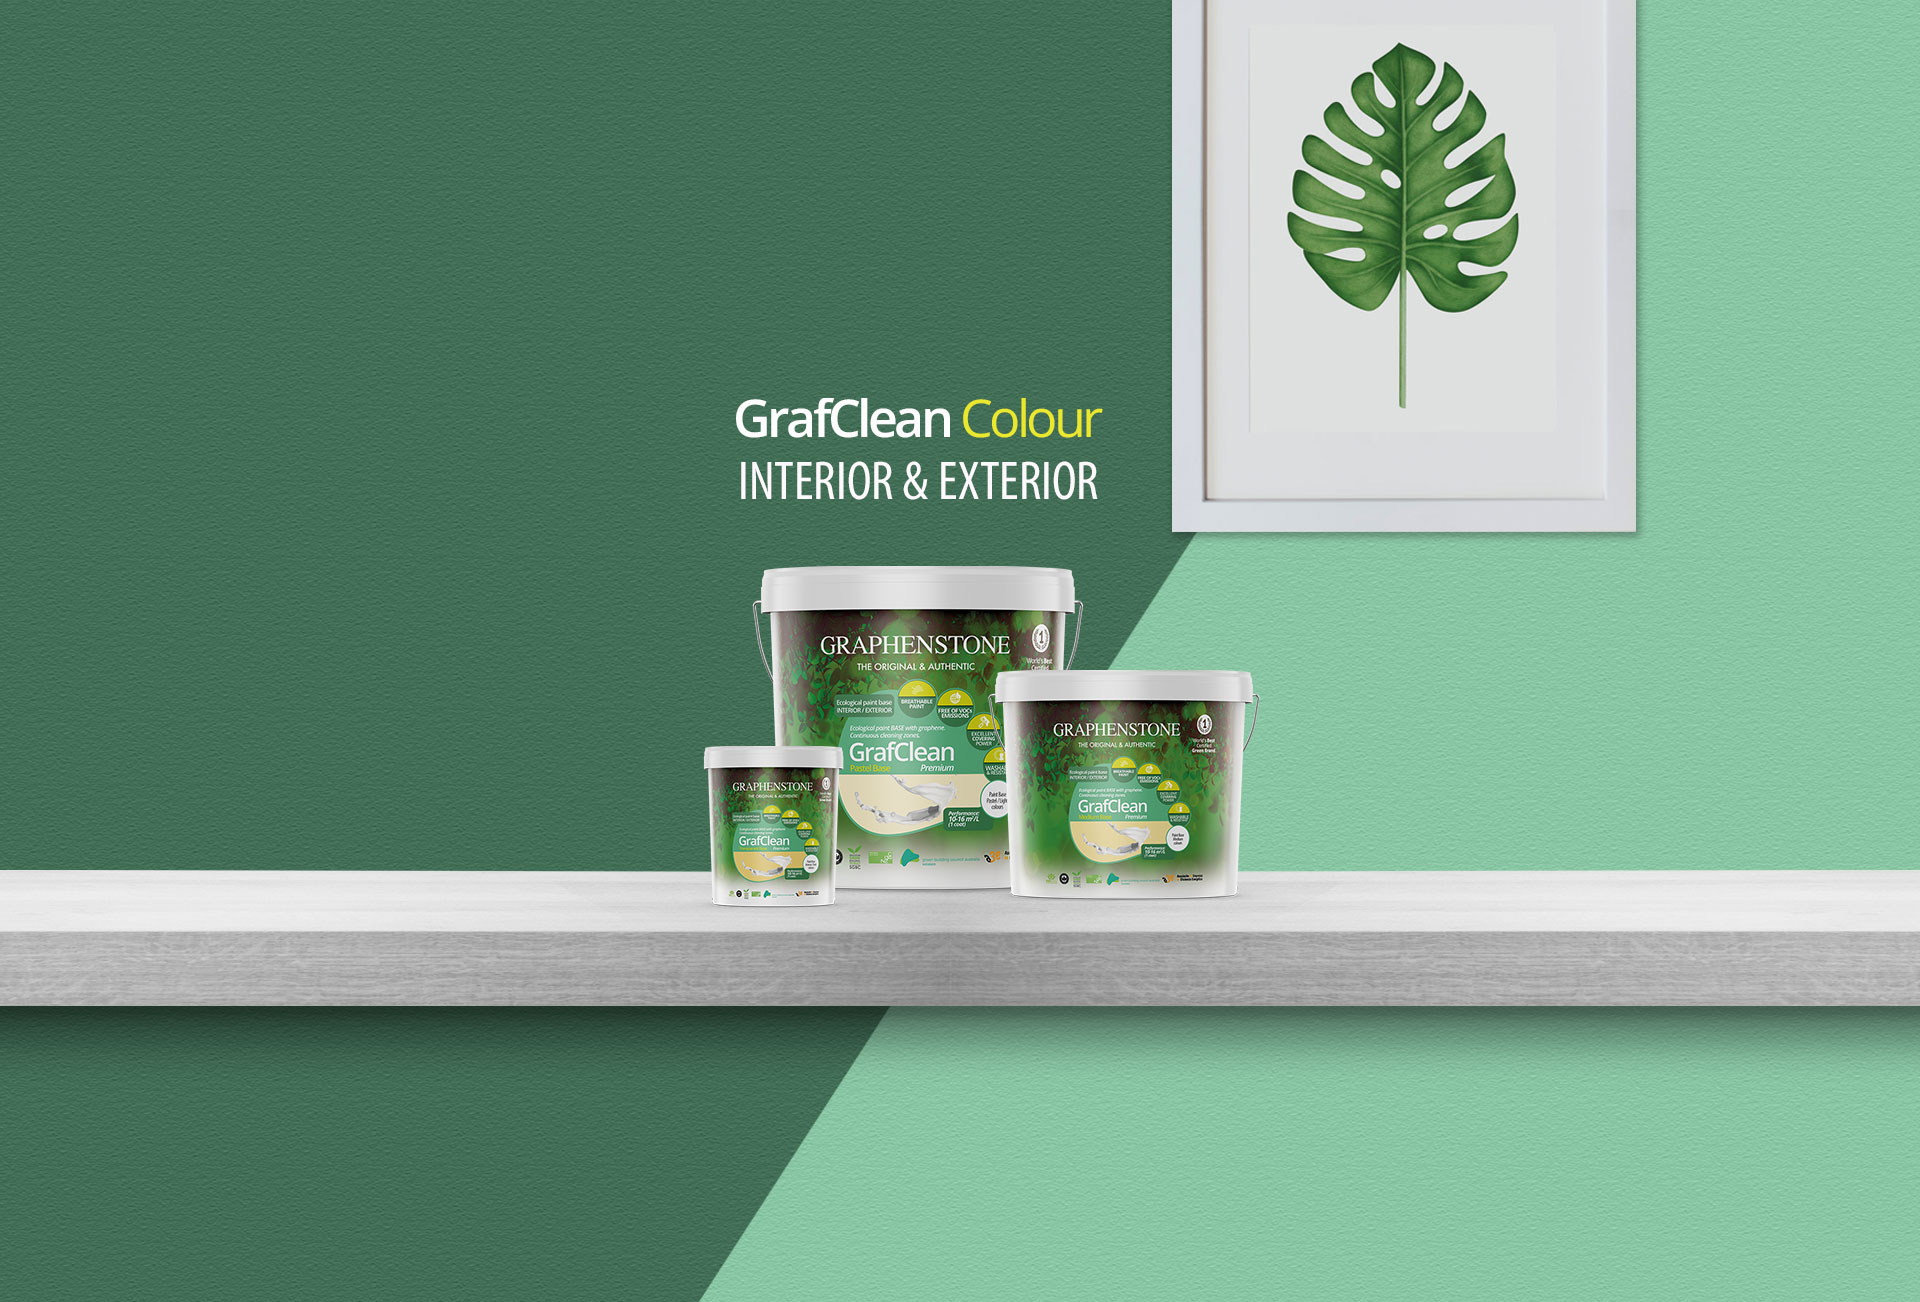 Graphenstone ecological paints